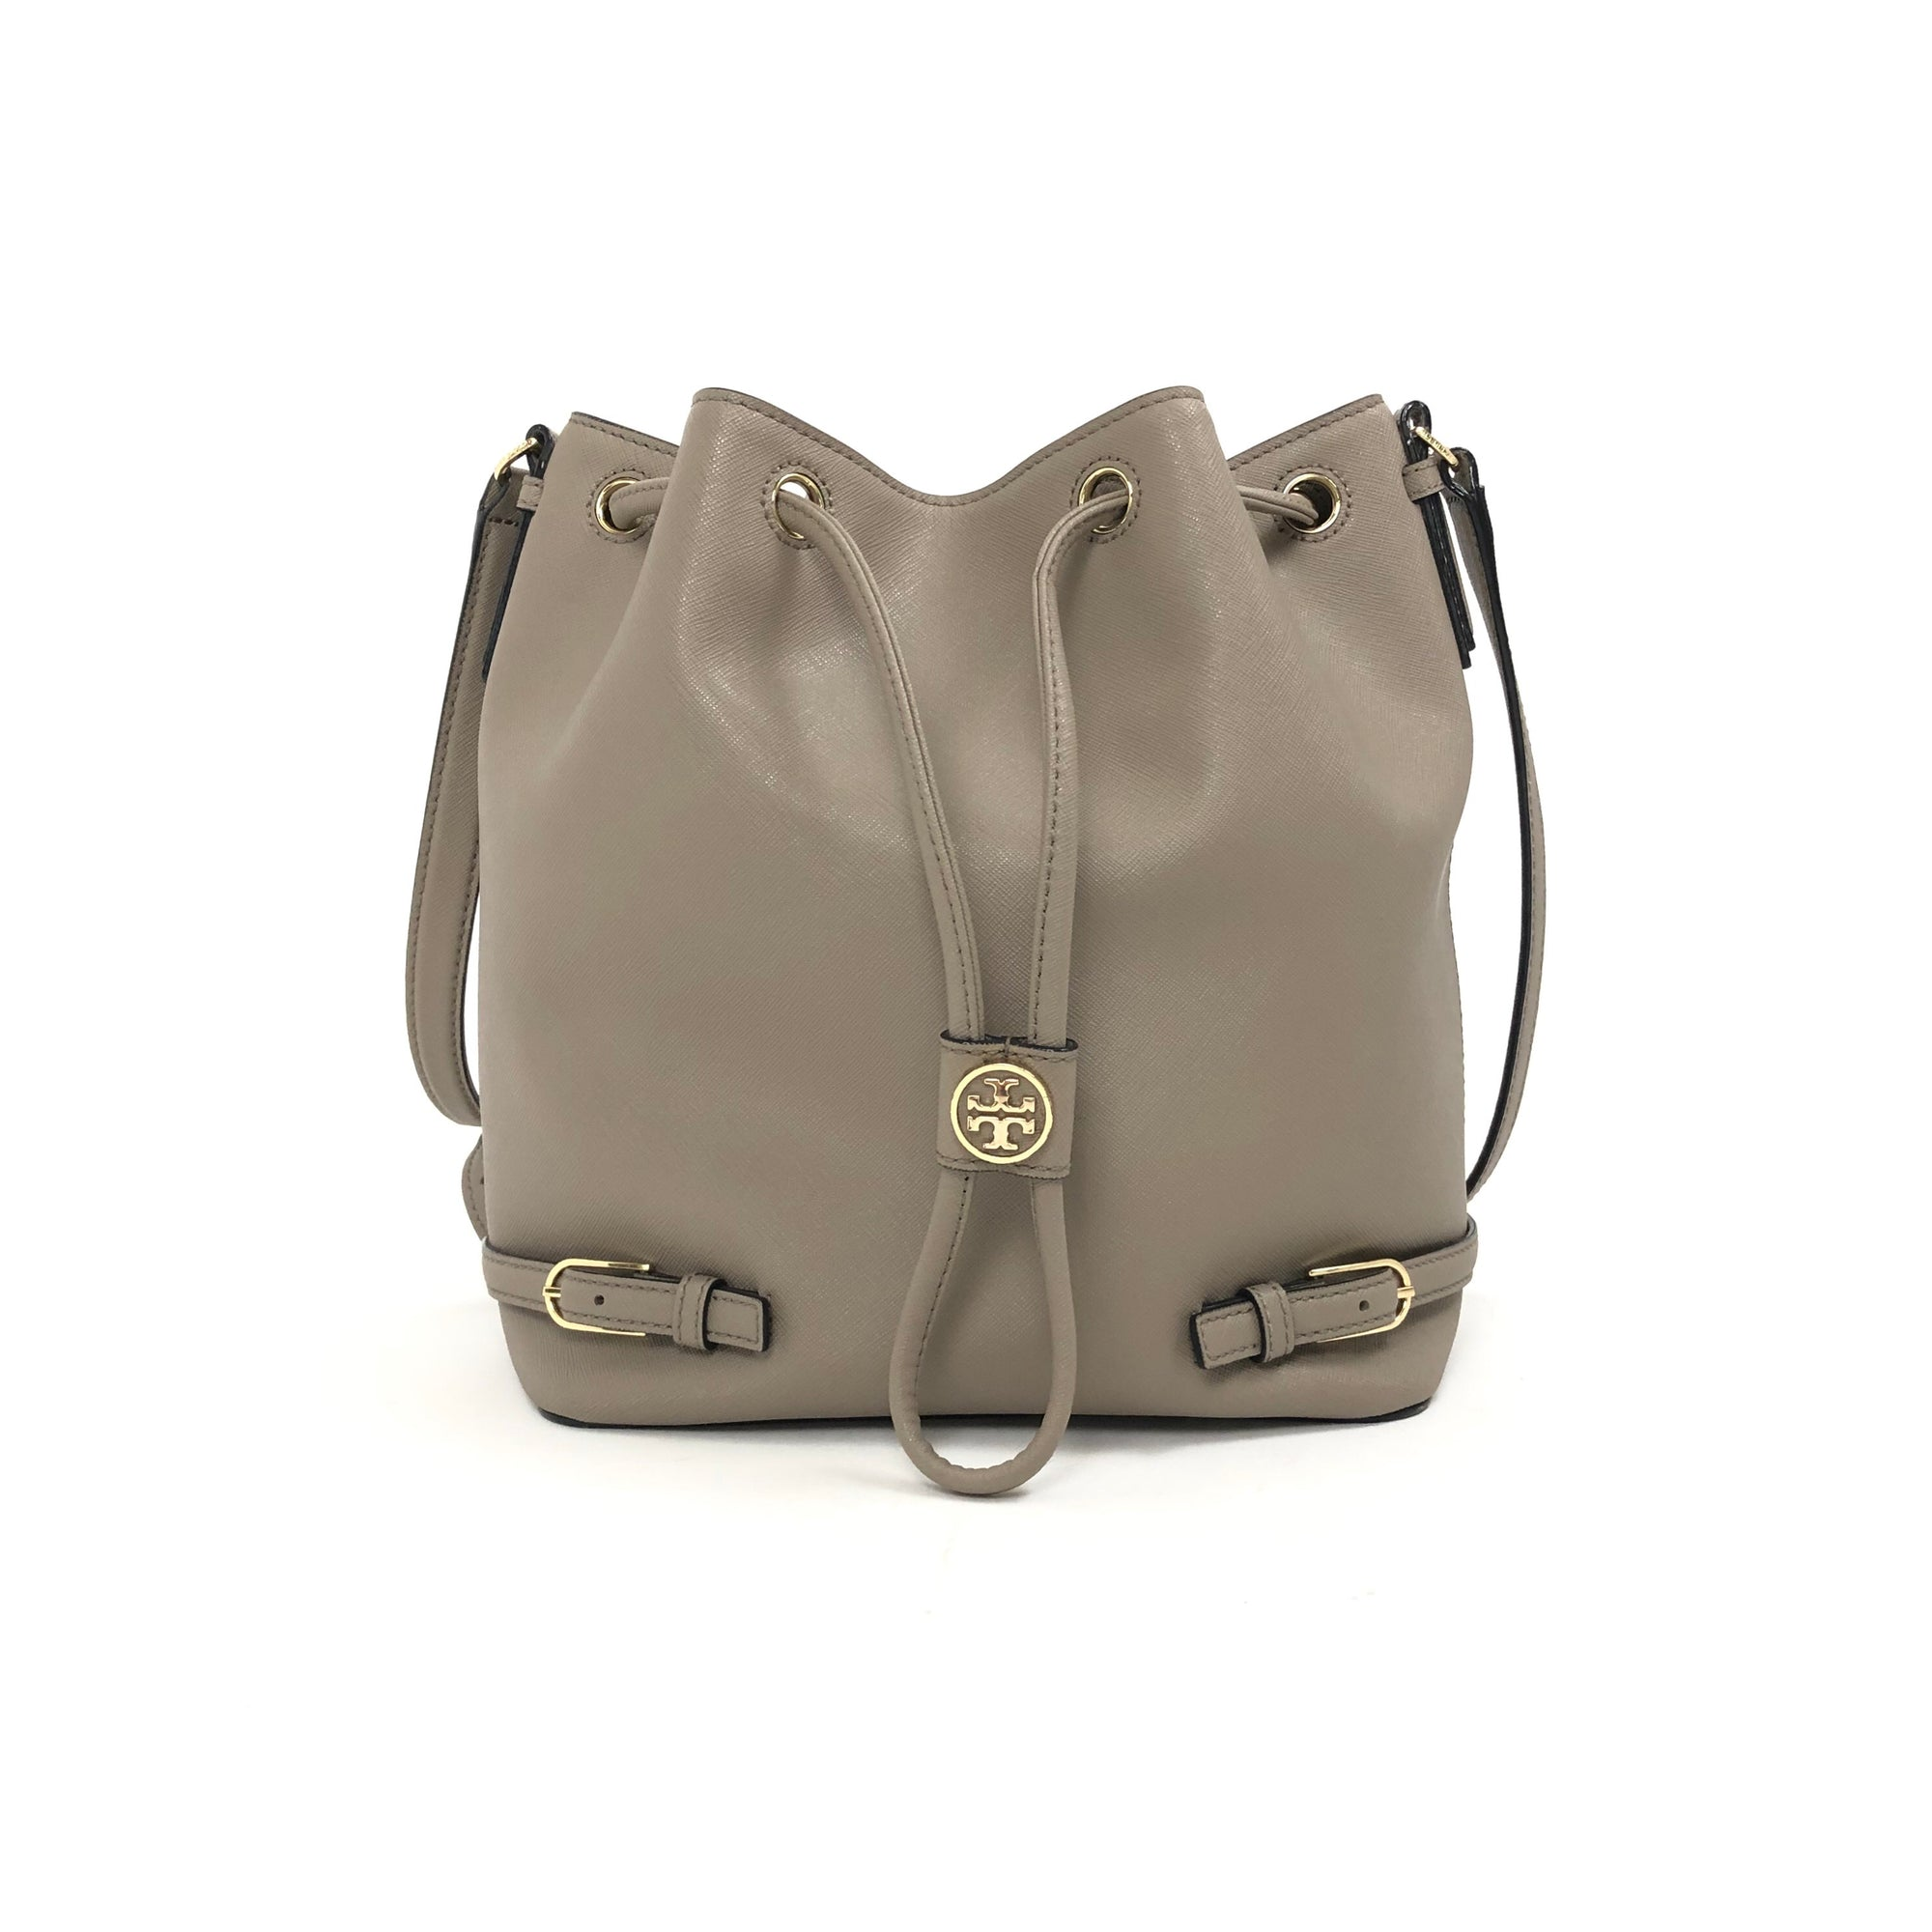 ladiesoflux - Tory Burch Robinson French Grey Bucket Bag - Ladies Of Lux - Handbag